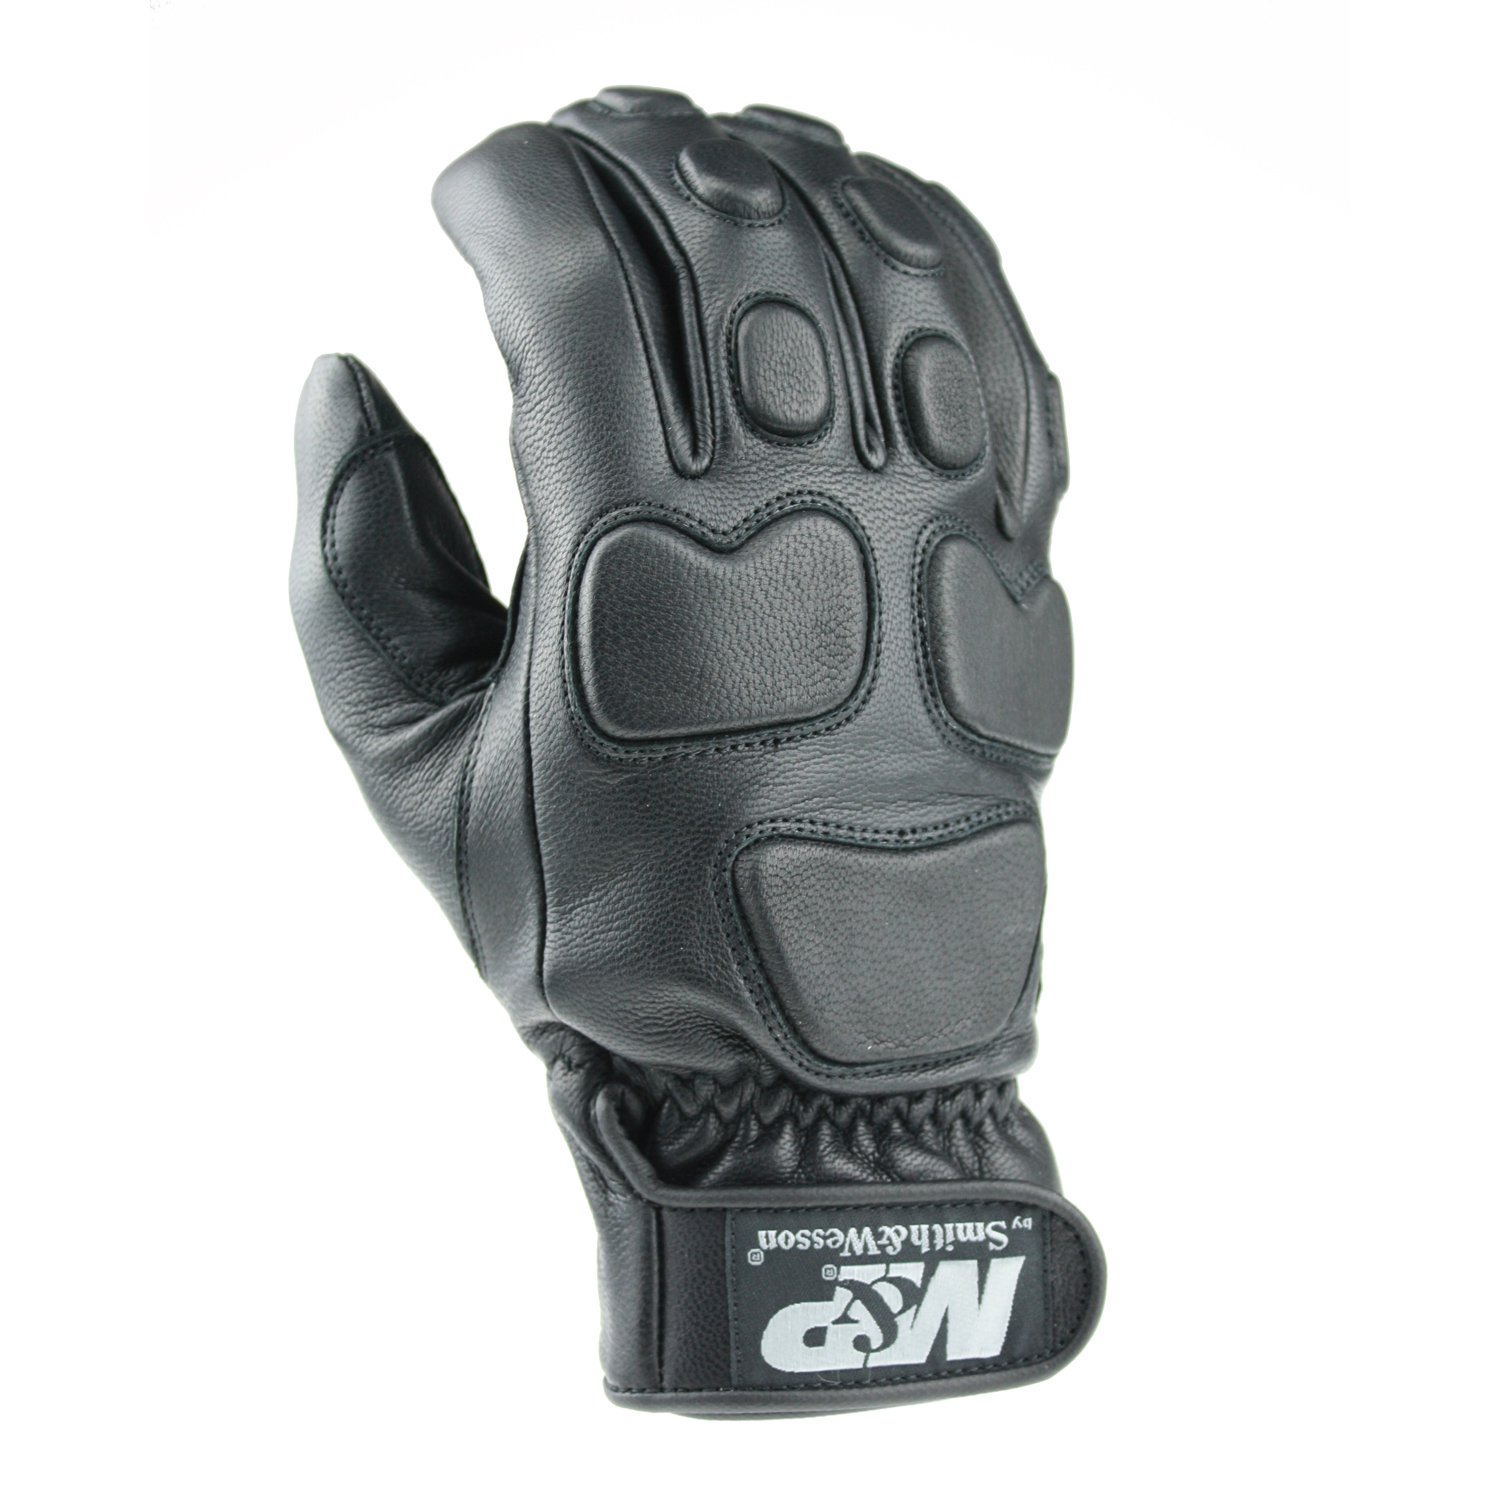 M&P by Smith & Wesson MP310 Premium Goat Skin Motorcycle Patrol Gloves - X-Large